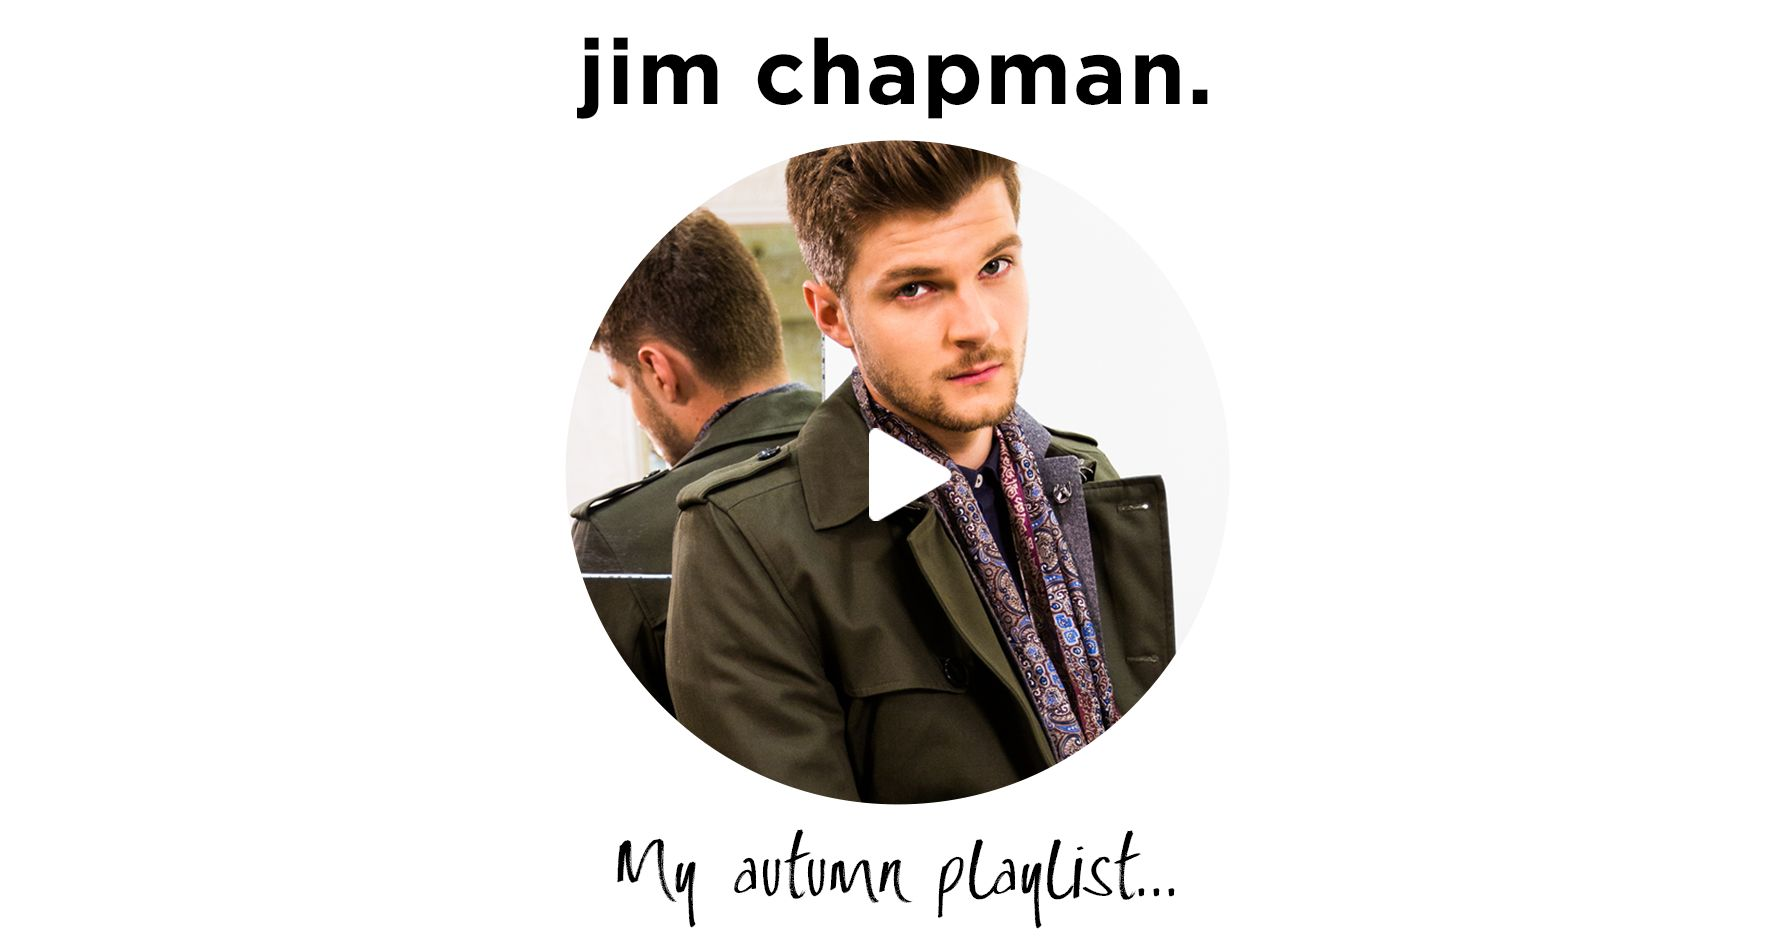 JIM CHAPMAN'S AUTUMN PLAYLIST